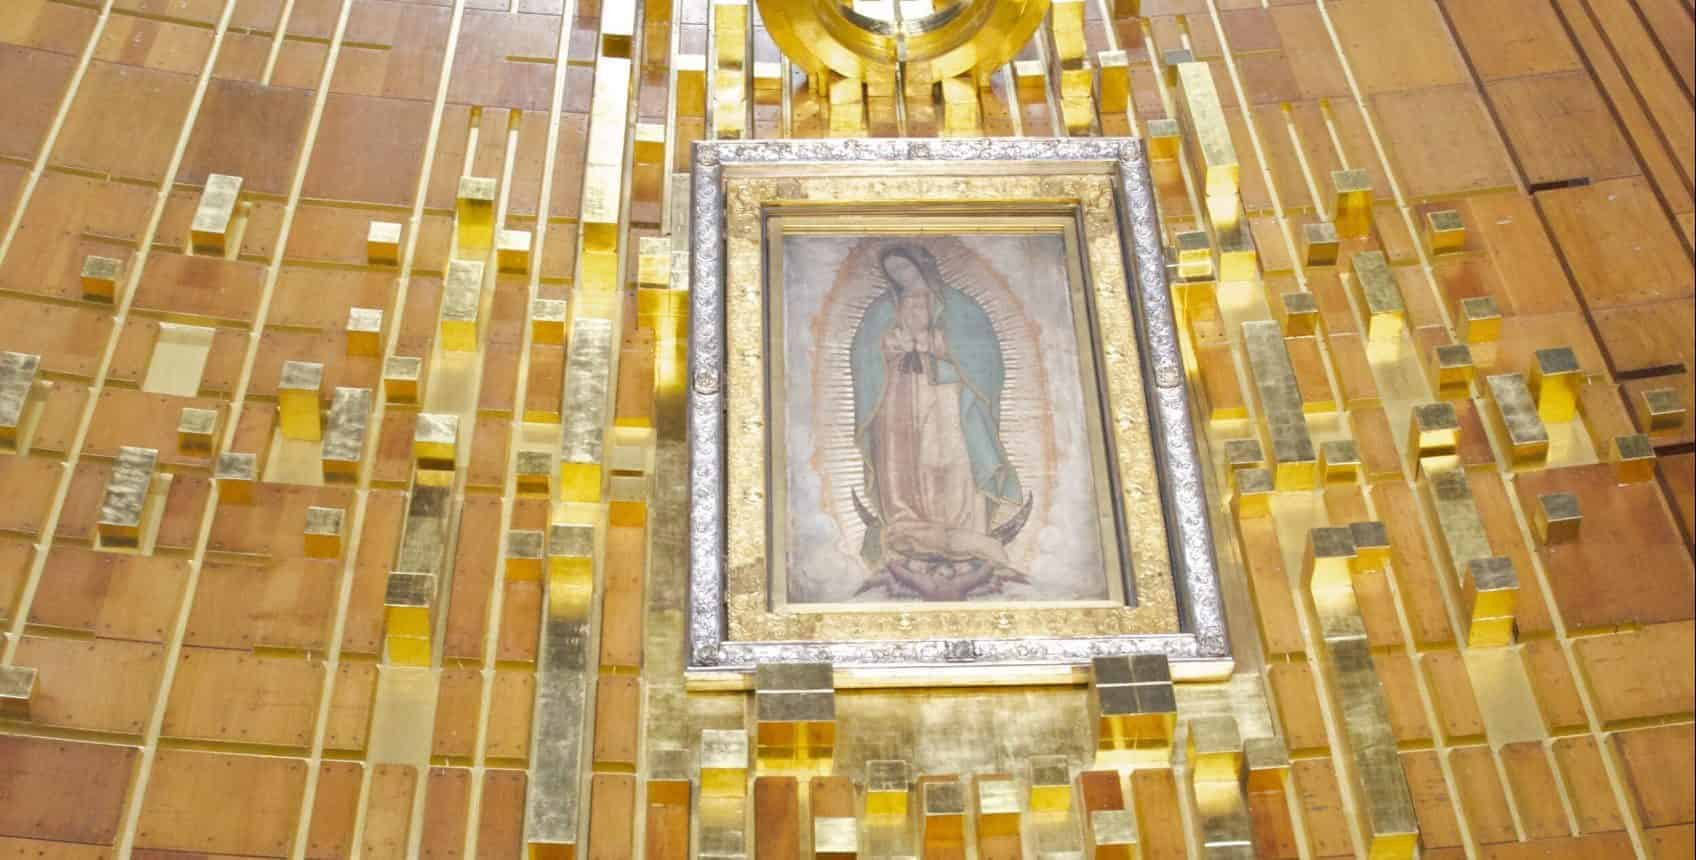 5 Things You Didn't Know About Our Lady of Guadalupe